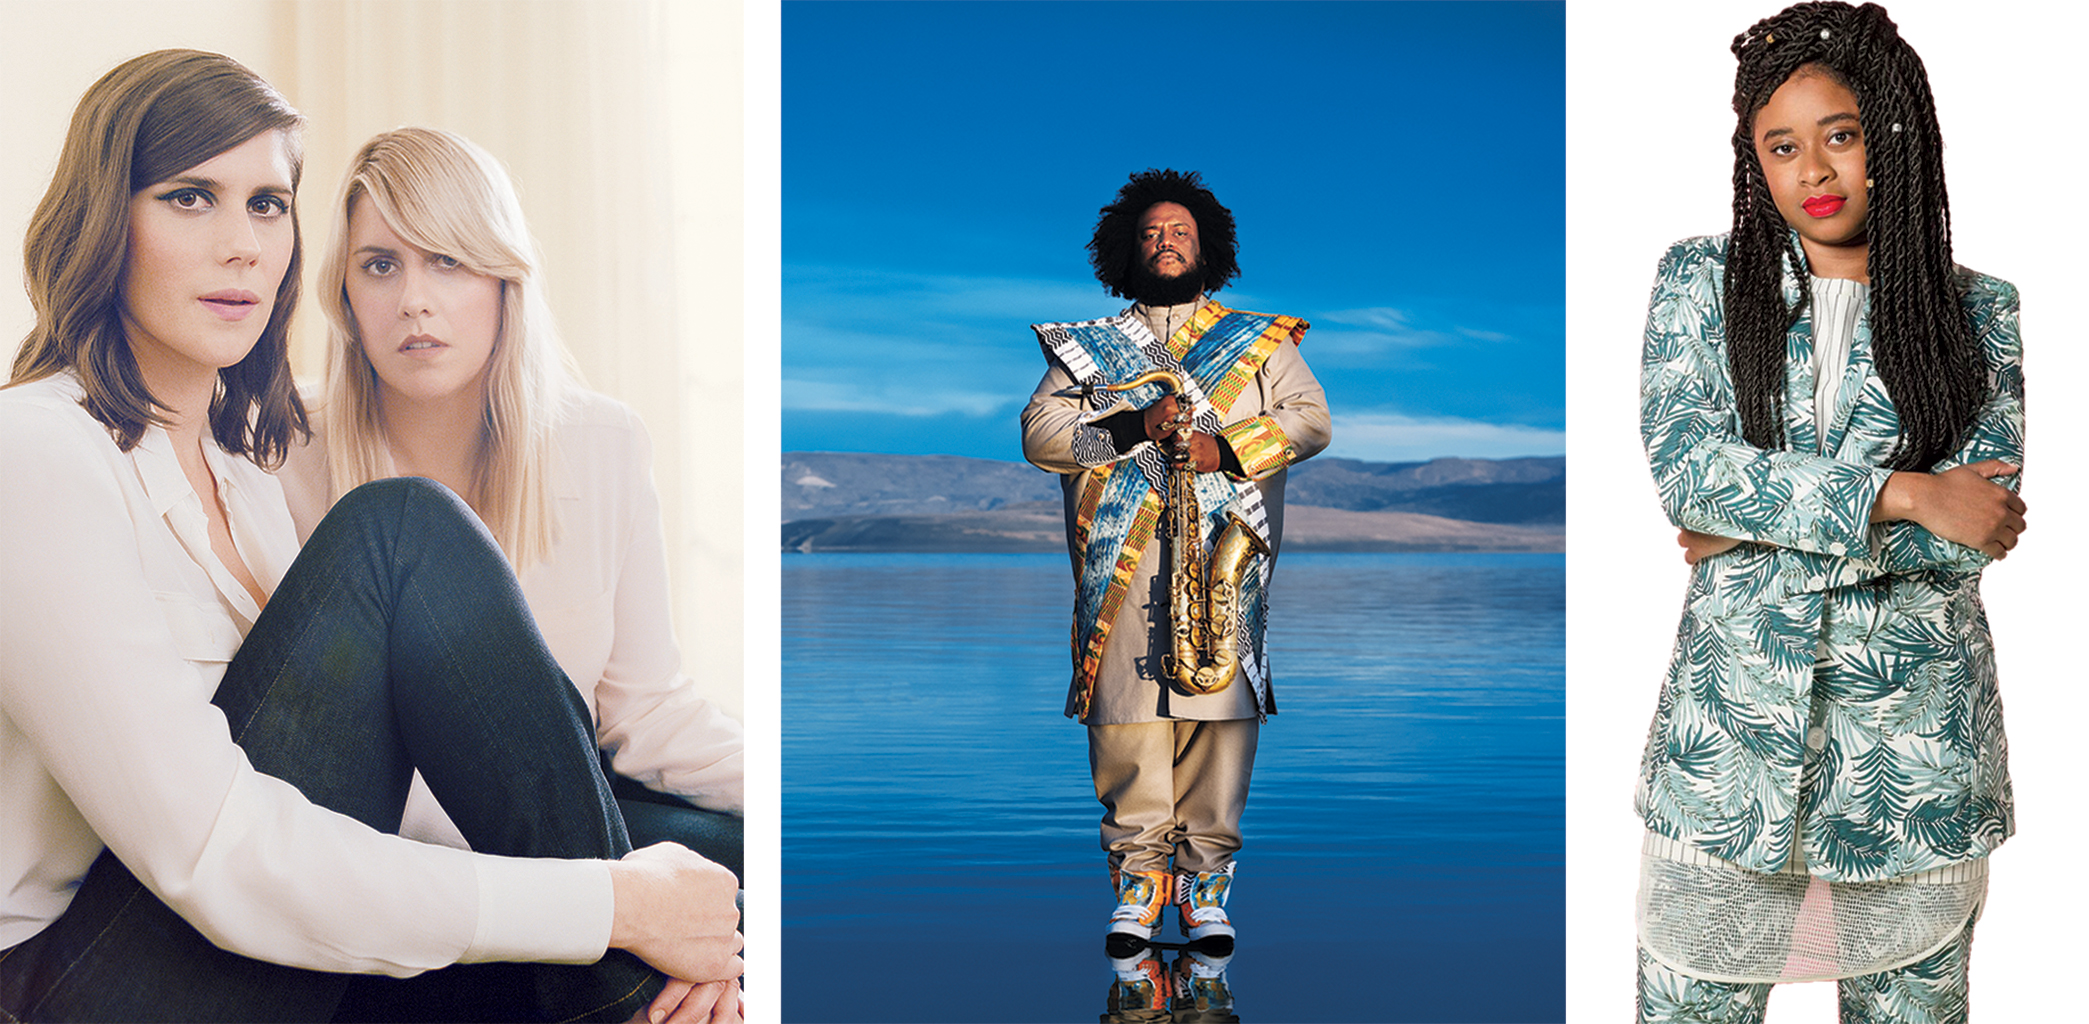 Left to Right: Kate and Laura Muleavy of Rodarte, Kamasi Washington, and Phoebe Robinson of 2 Dope Queens. Photograph of Rodarte by Autumn de Wilde. Photograph of Washington Courtesy of Sacks and Co. Photograph of Robinson by Charise Ash.